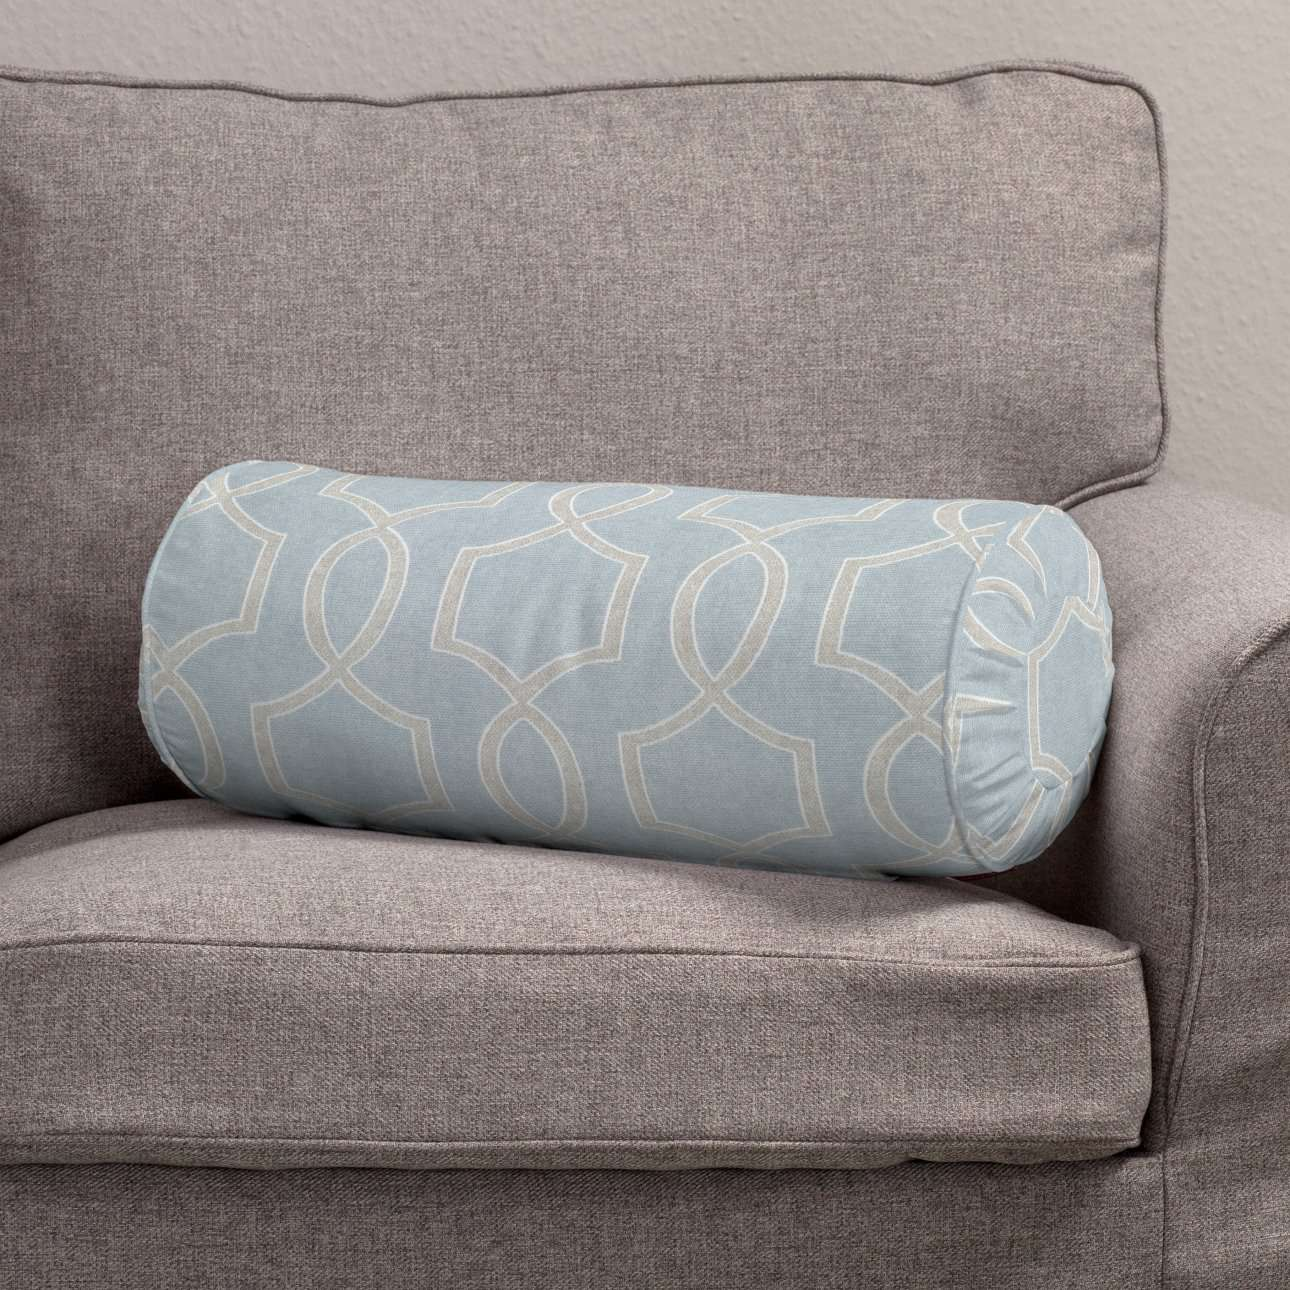 Bolster cushion with pleats Ø 20 × 50 cm (8 × 20 inch) in collection Comics/Geometrical, fabric: 141-25